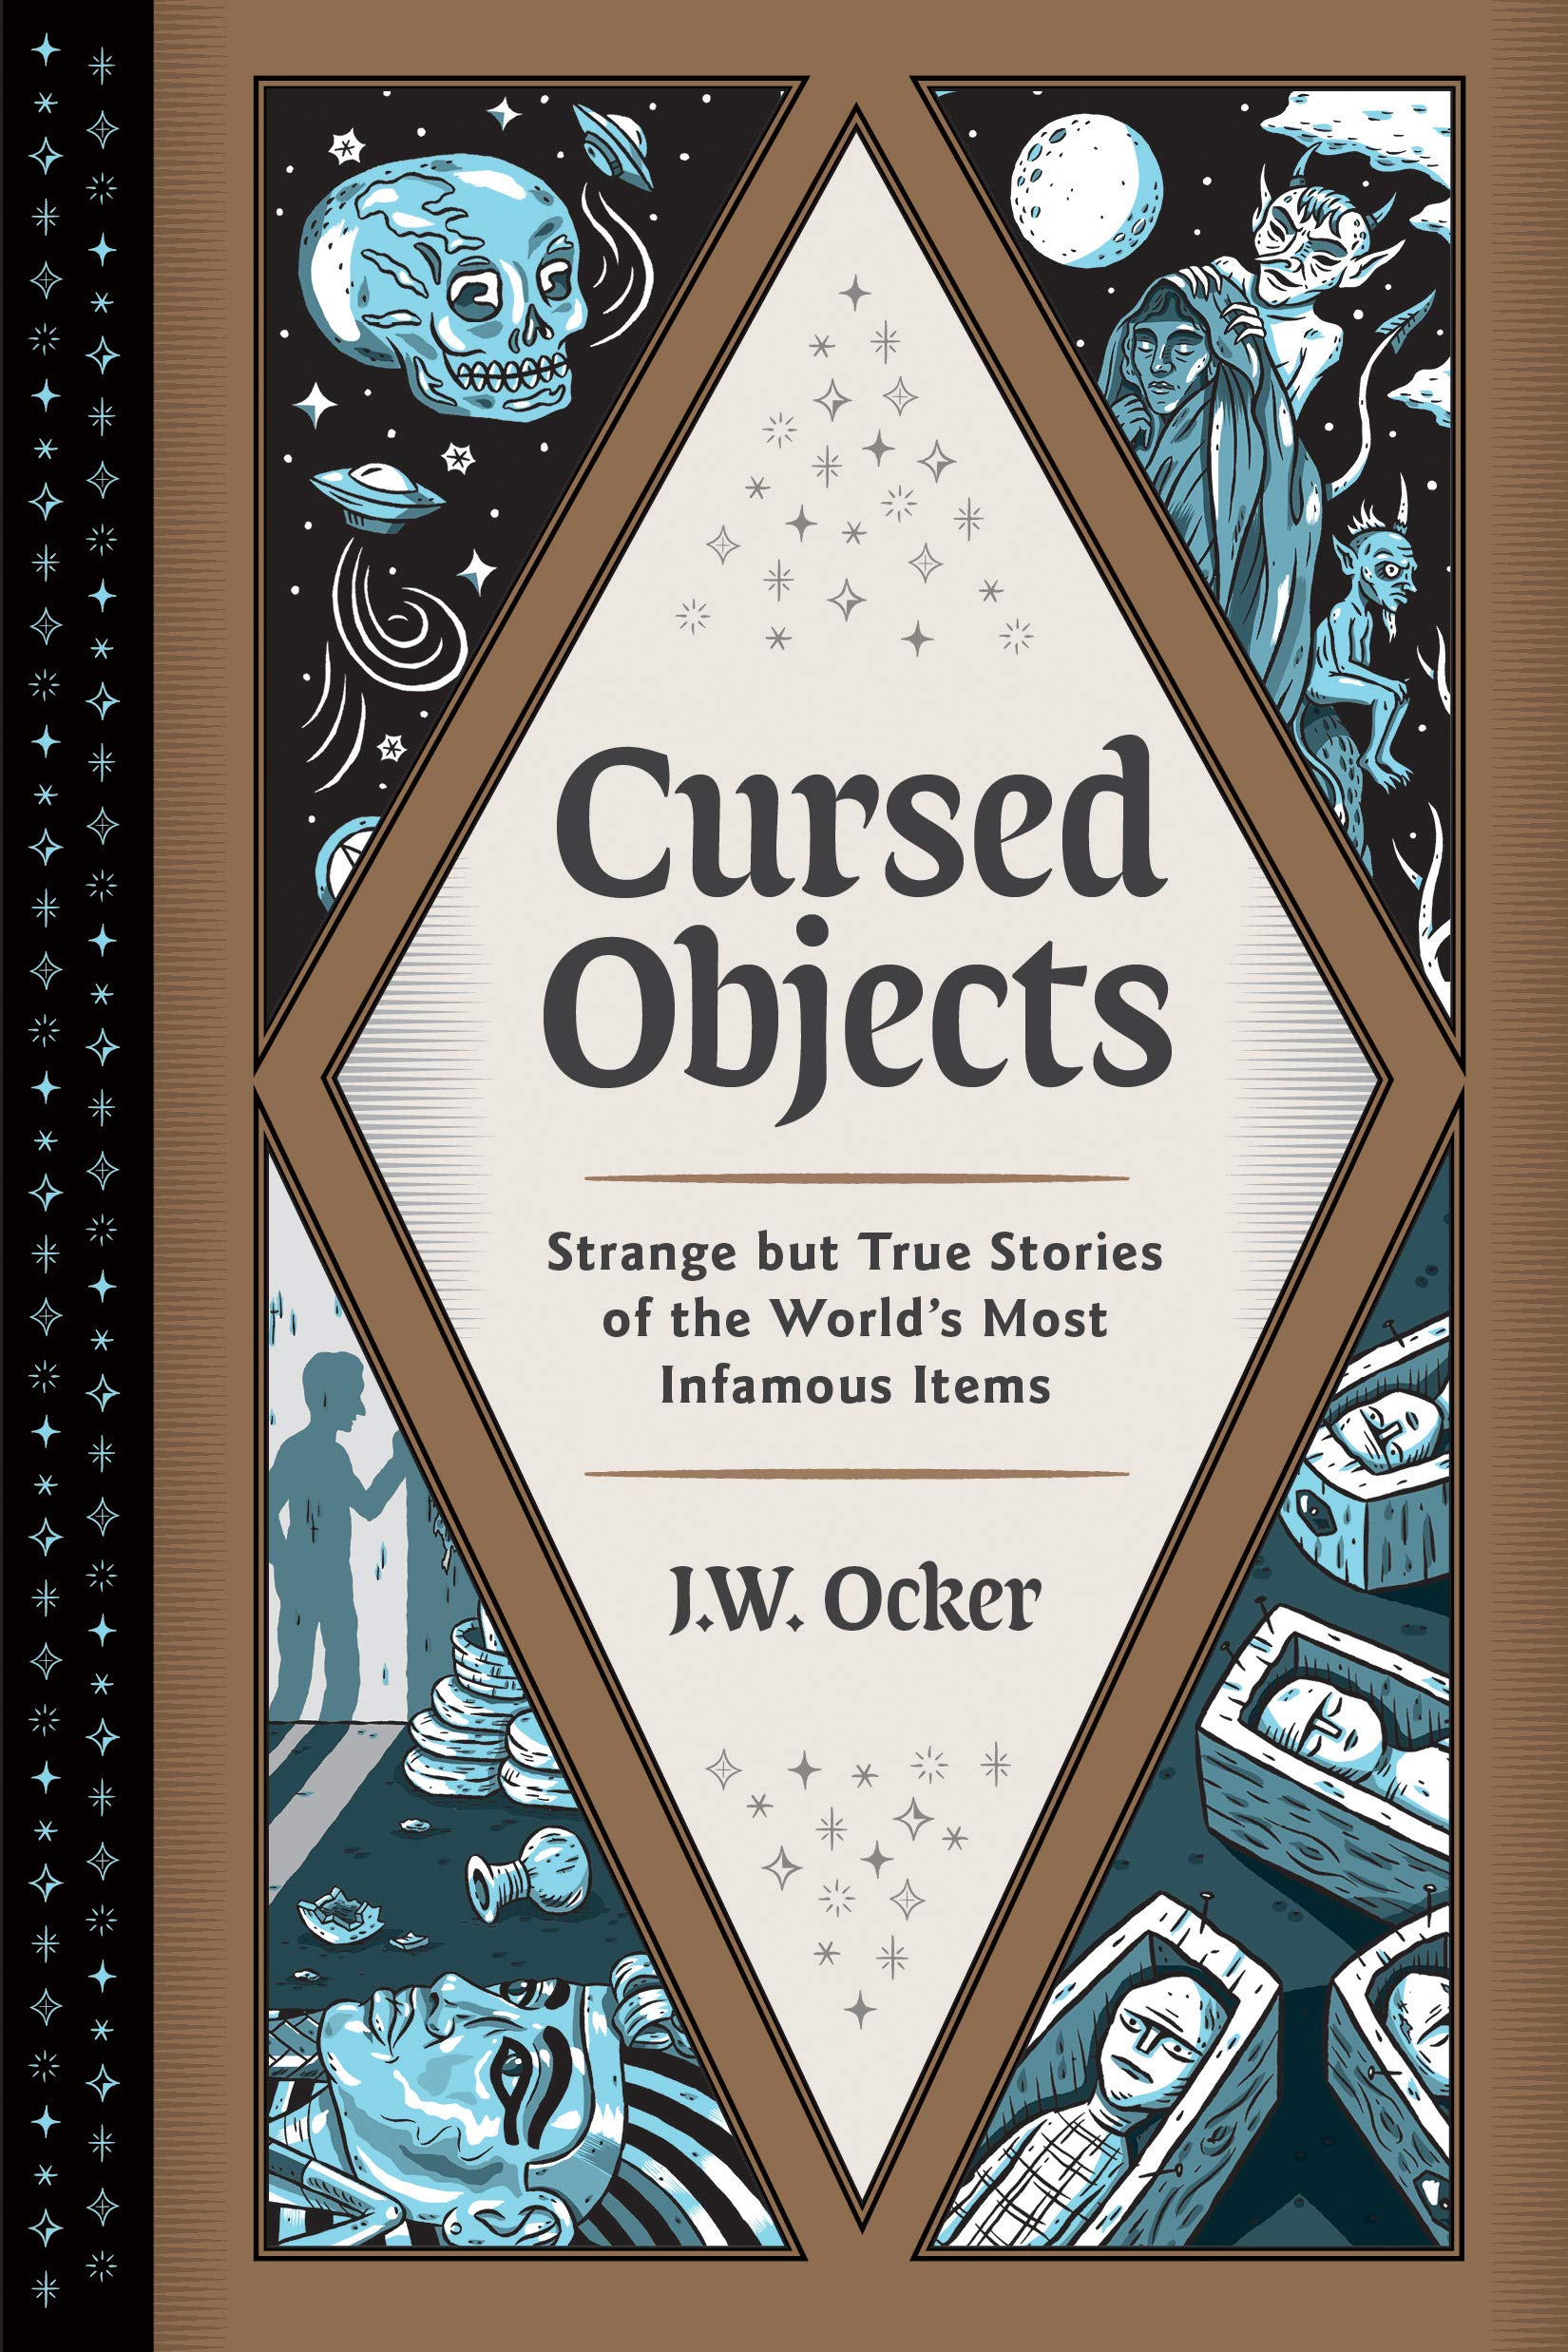 Cursed Objects: Strange but True Stories of the World's Most Infamous Items